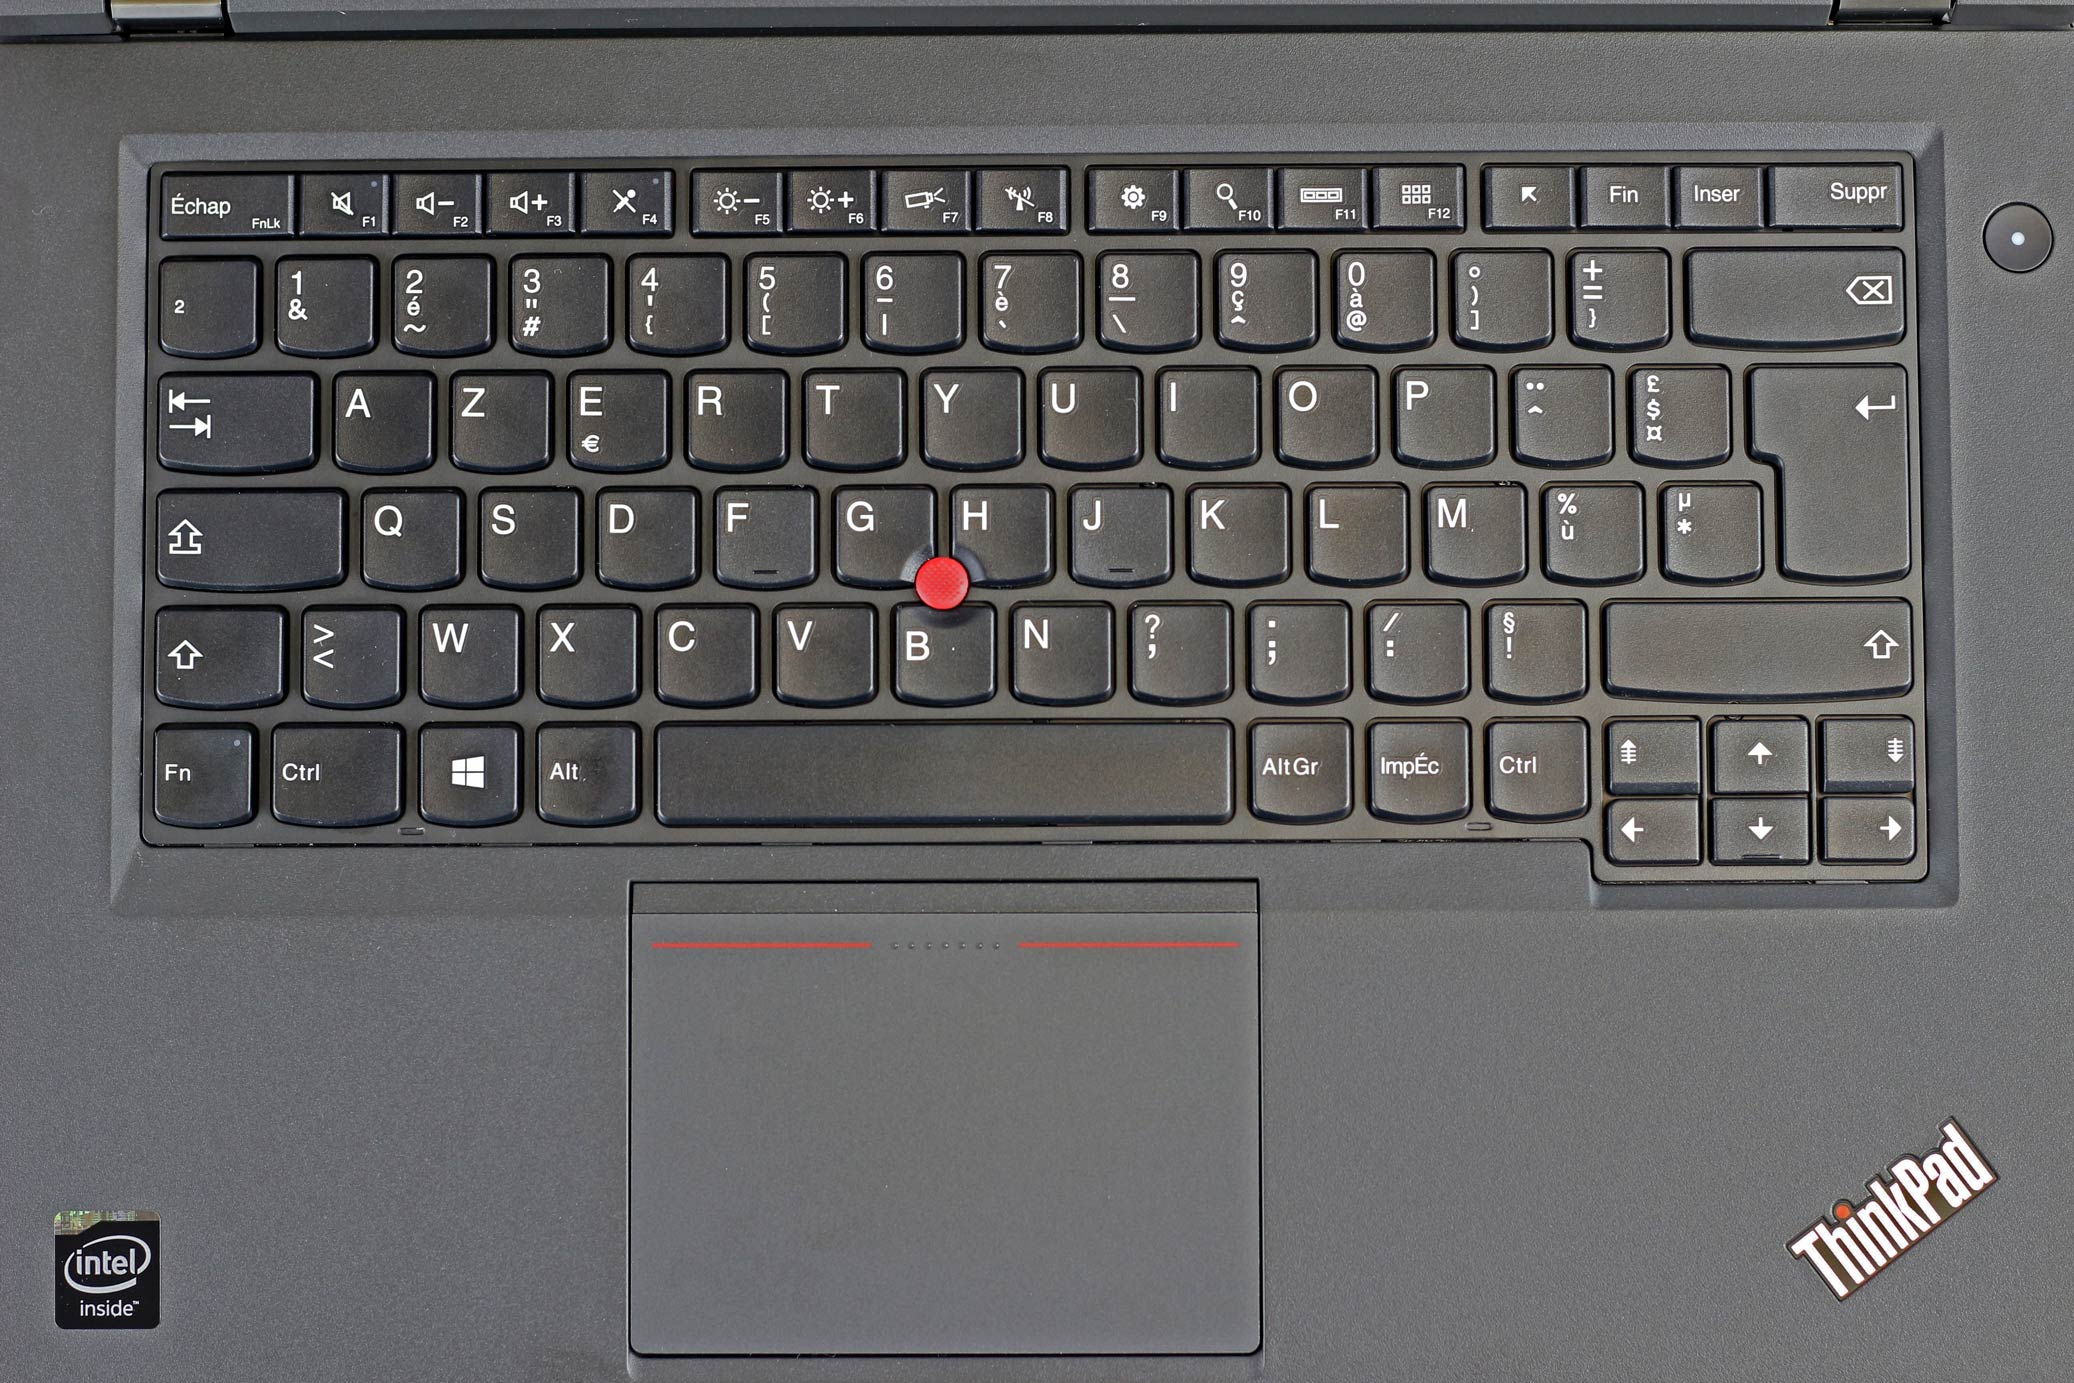 L'avis de l'expert : Test Lenovo thinkpad L440 - Windows 10